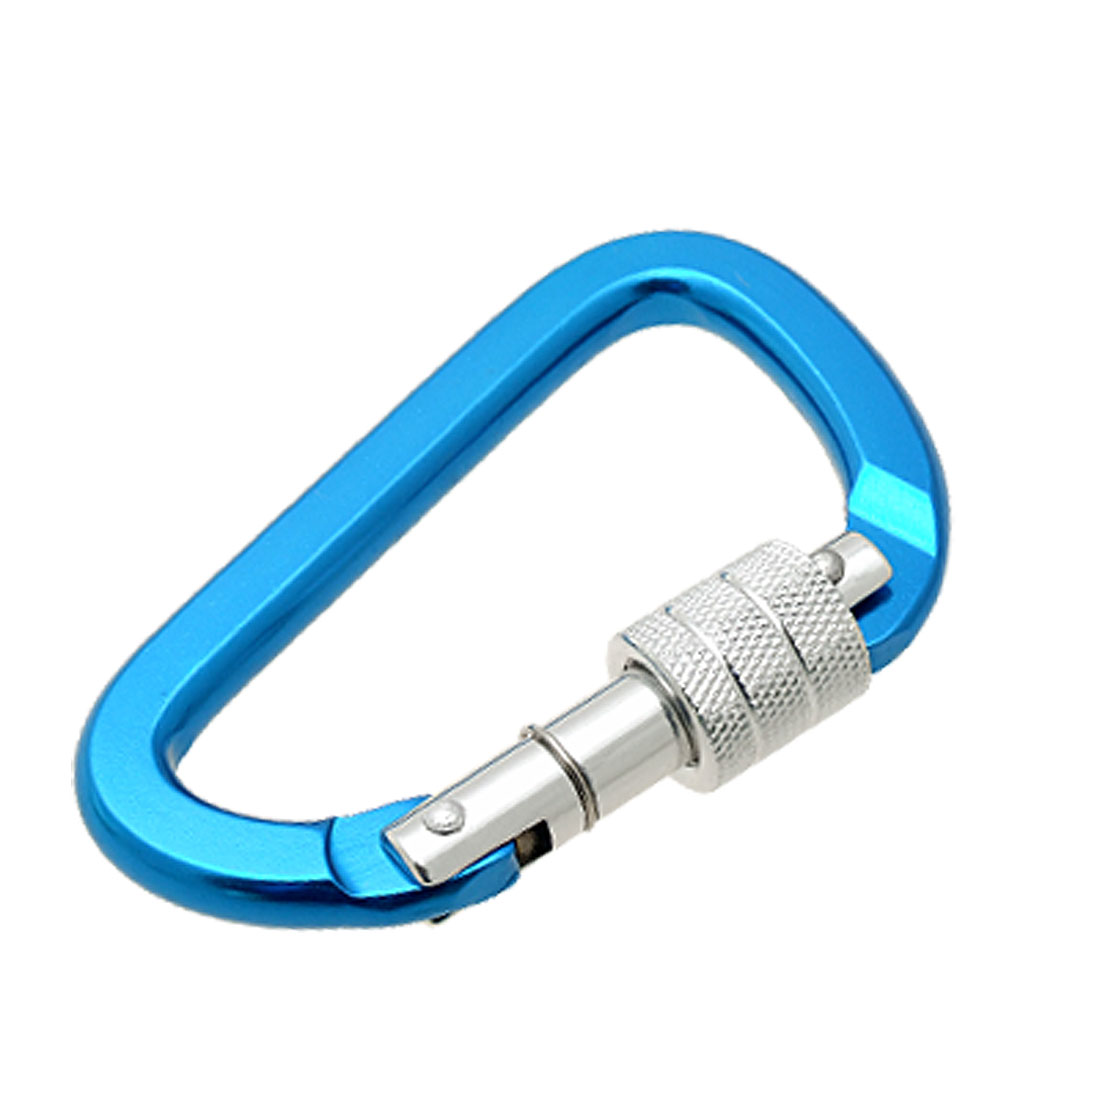 Bi-colored Painted D Shaped Aluminum Locking Carabiner